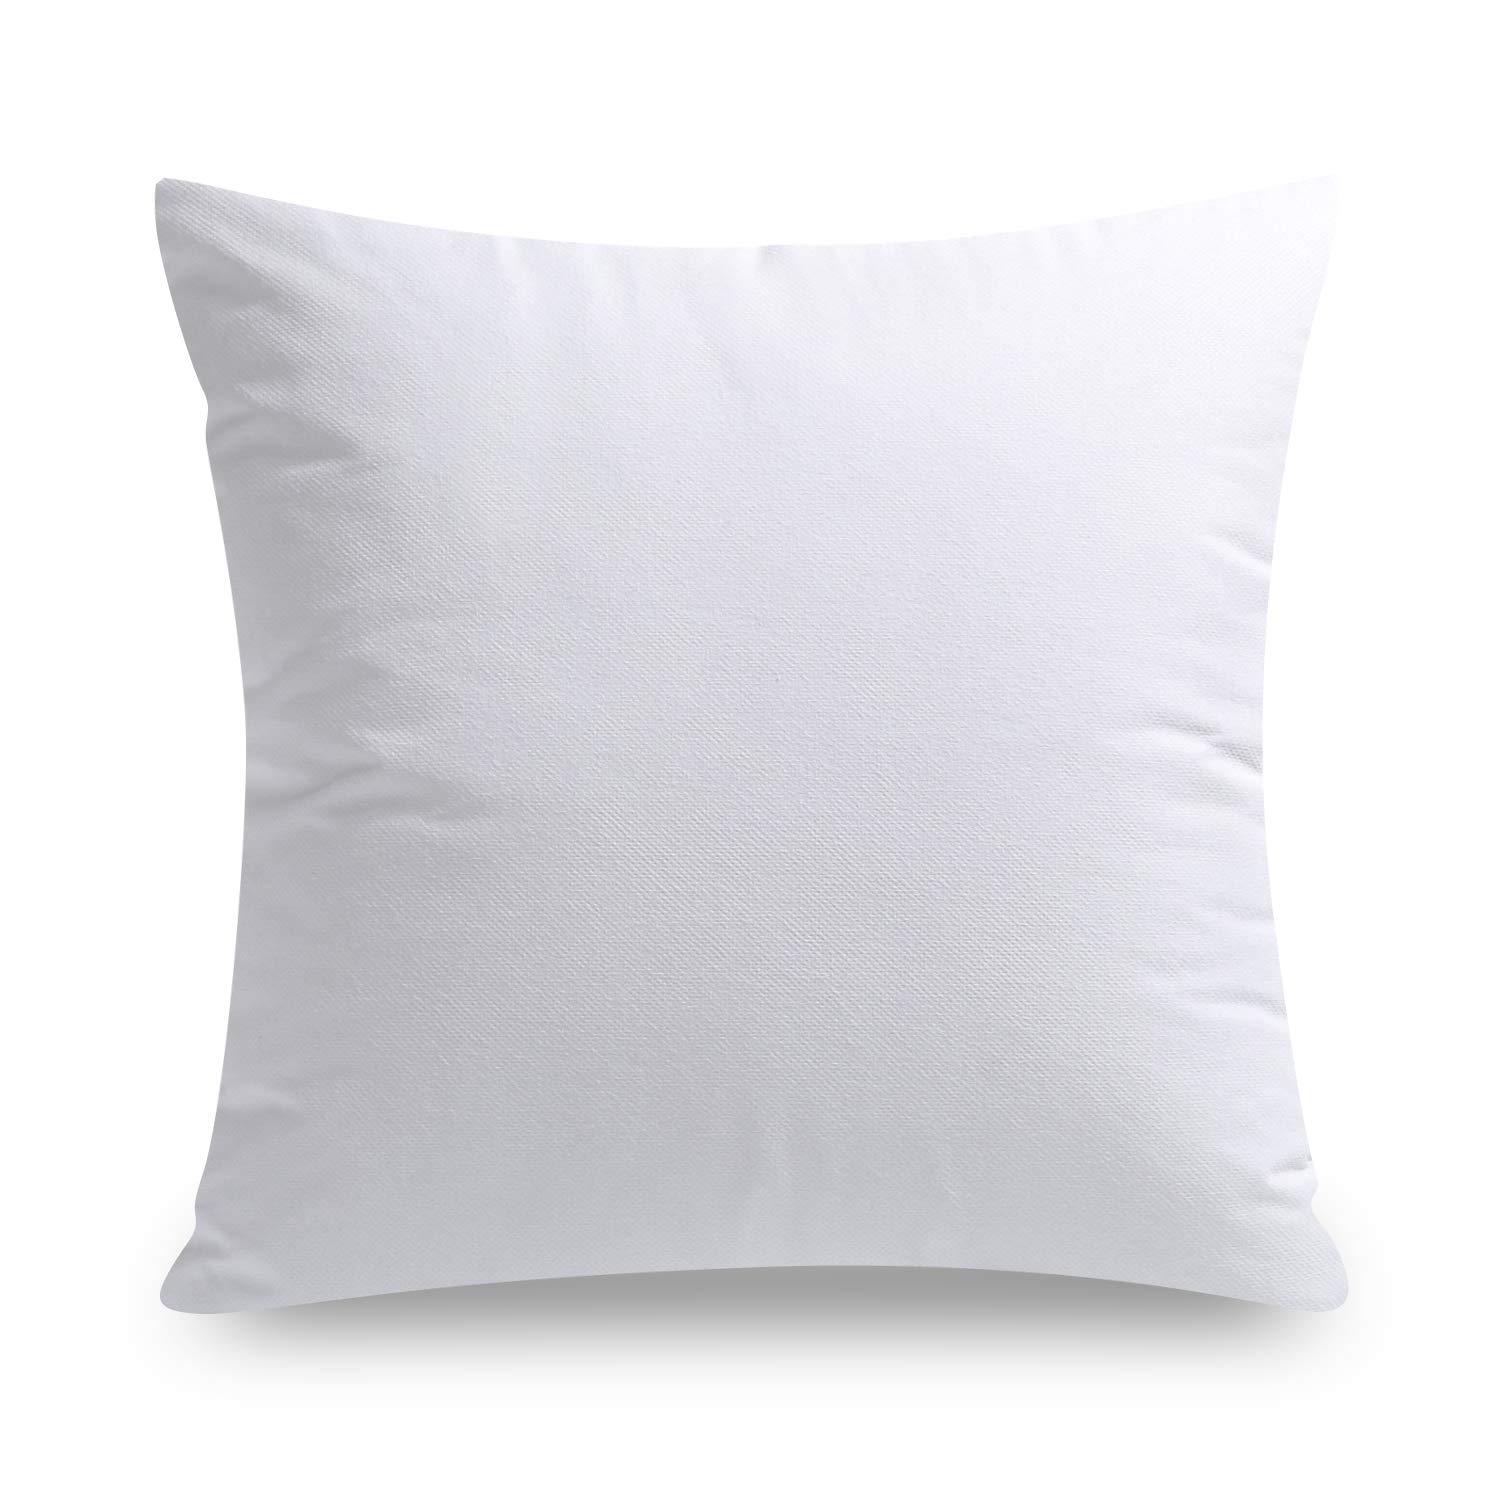 phantoscope hypoallergenic square form decorative throw pillow insert couch sham cusion stuffer 18 x 18 1 pack